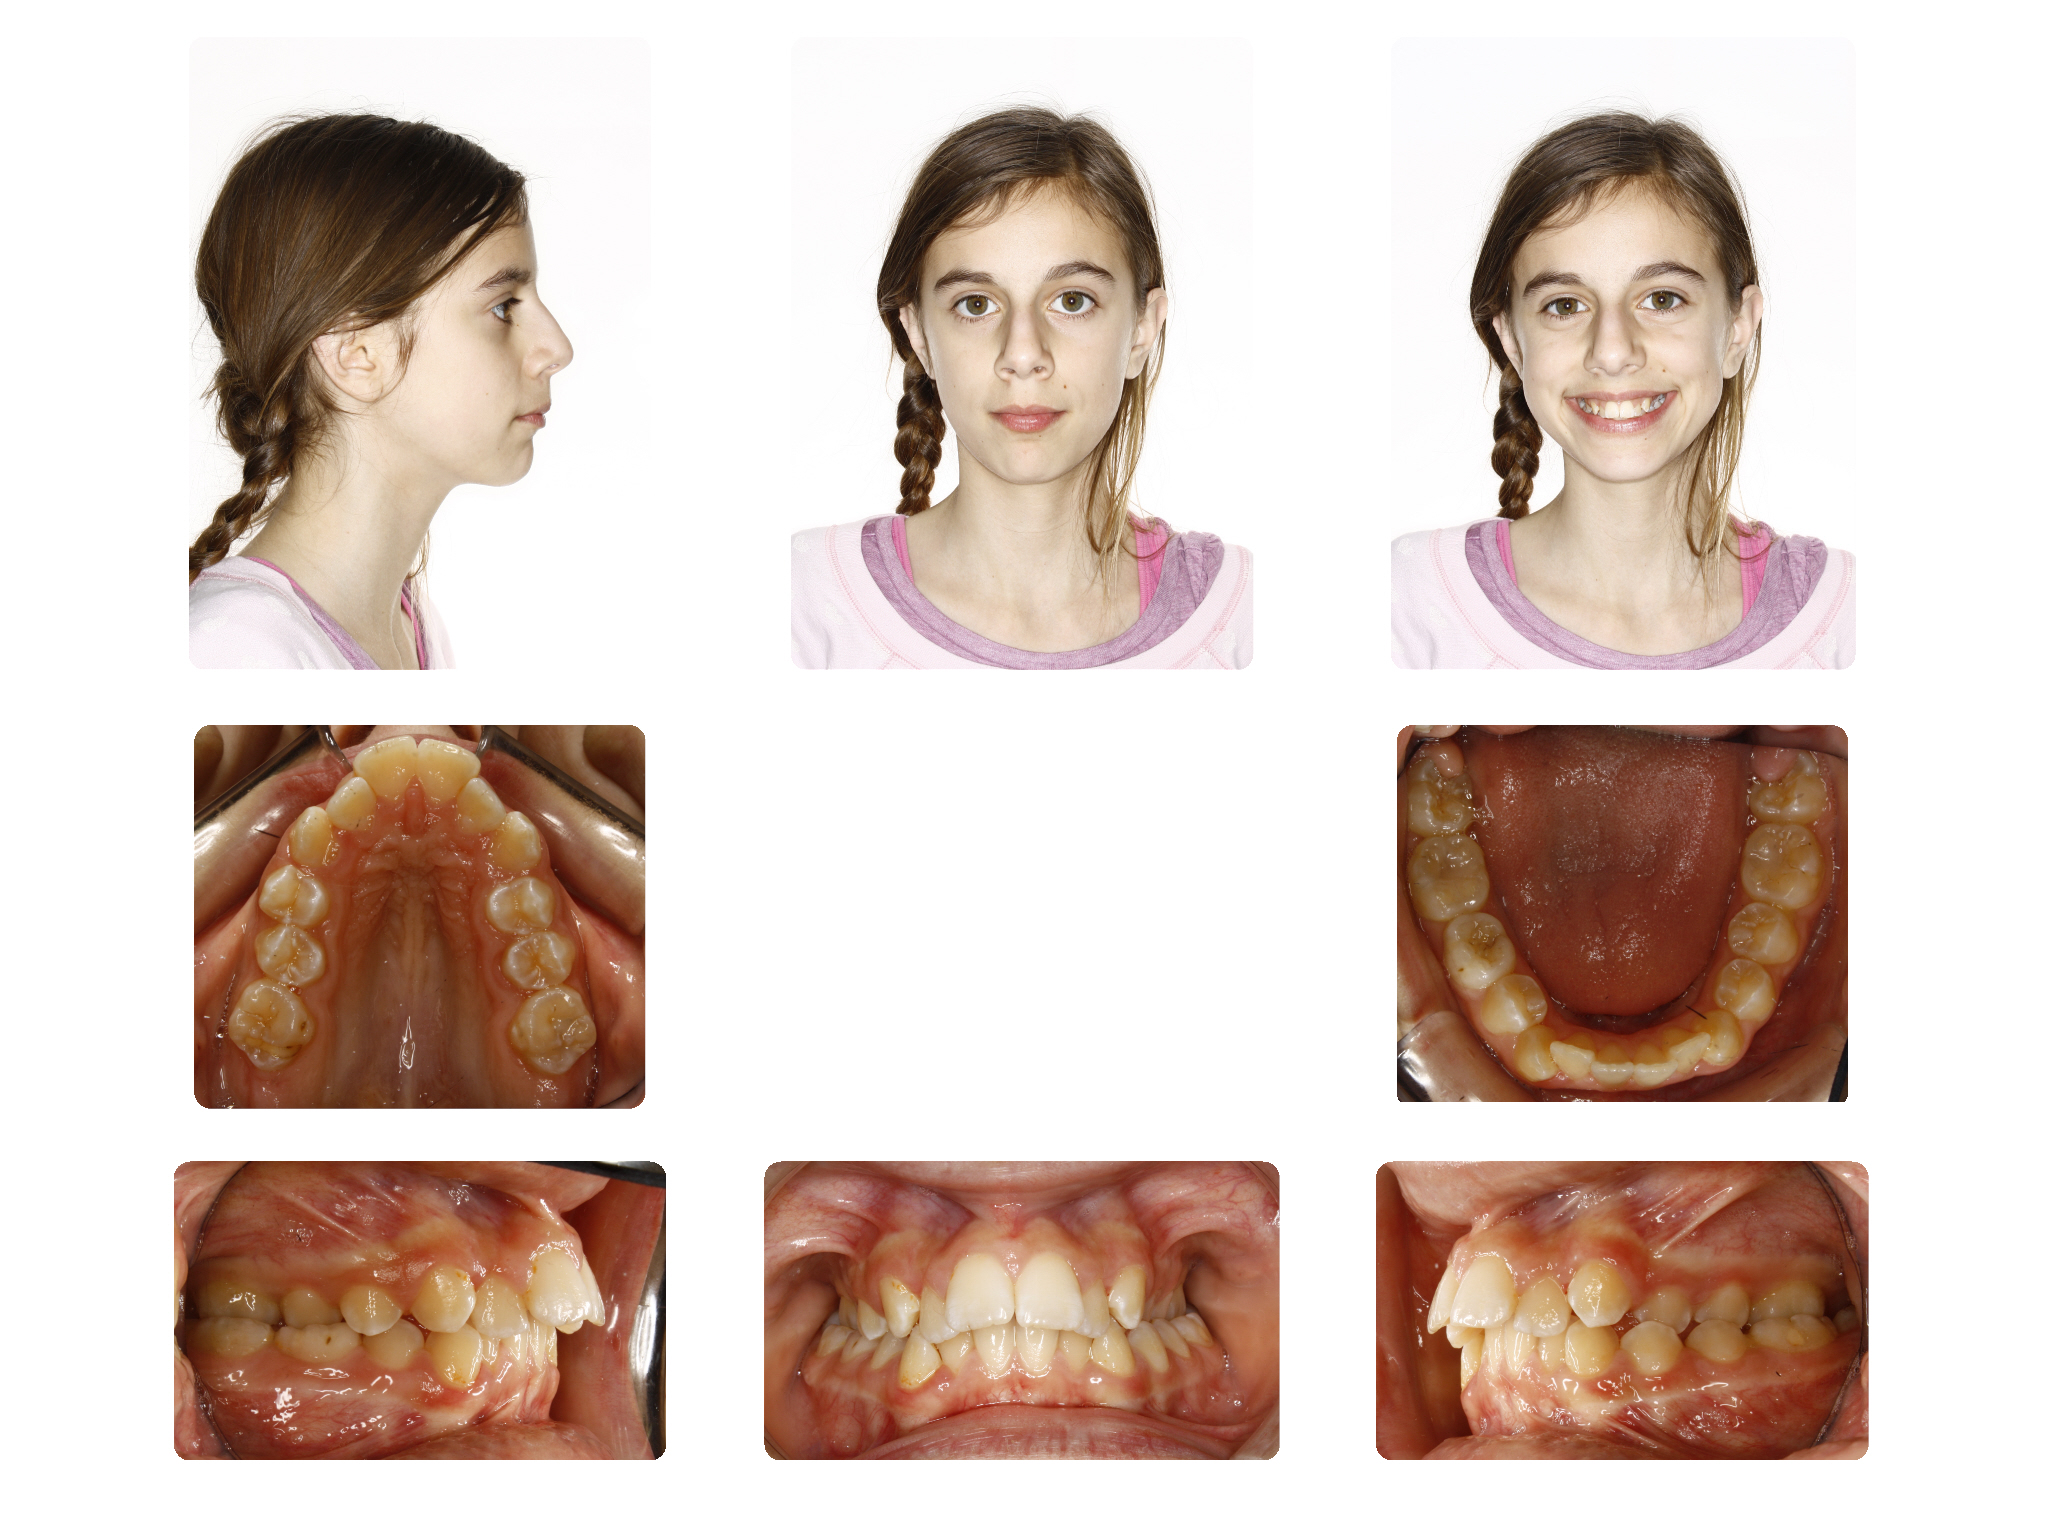 Before   Narrow upper arch with teeth in cross bite; Patient V.C started 12 Yrs. Old